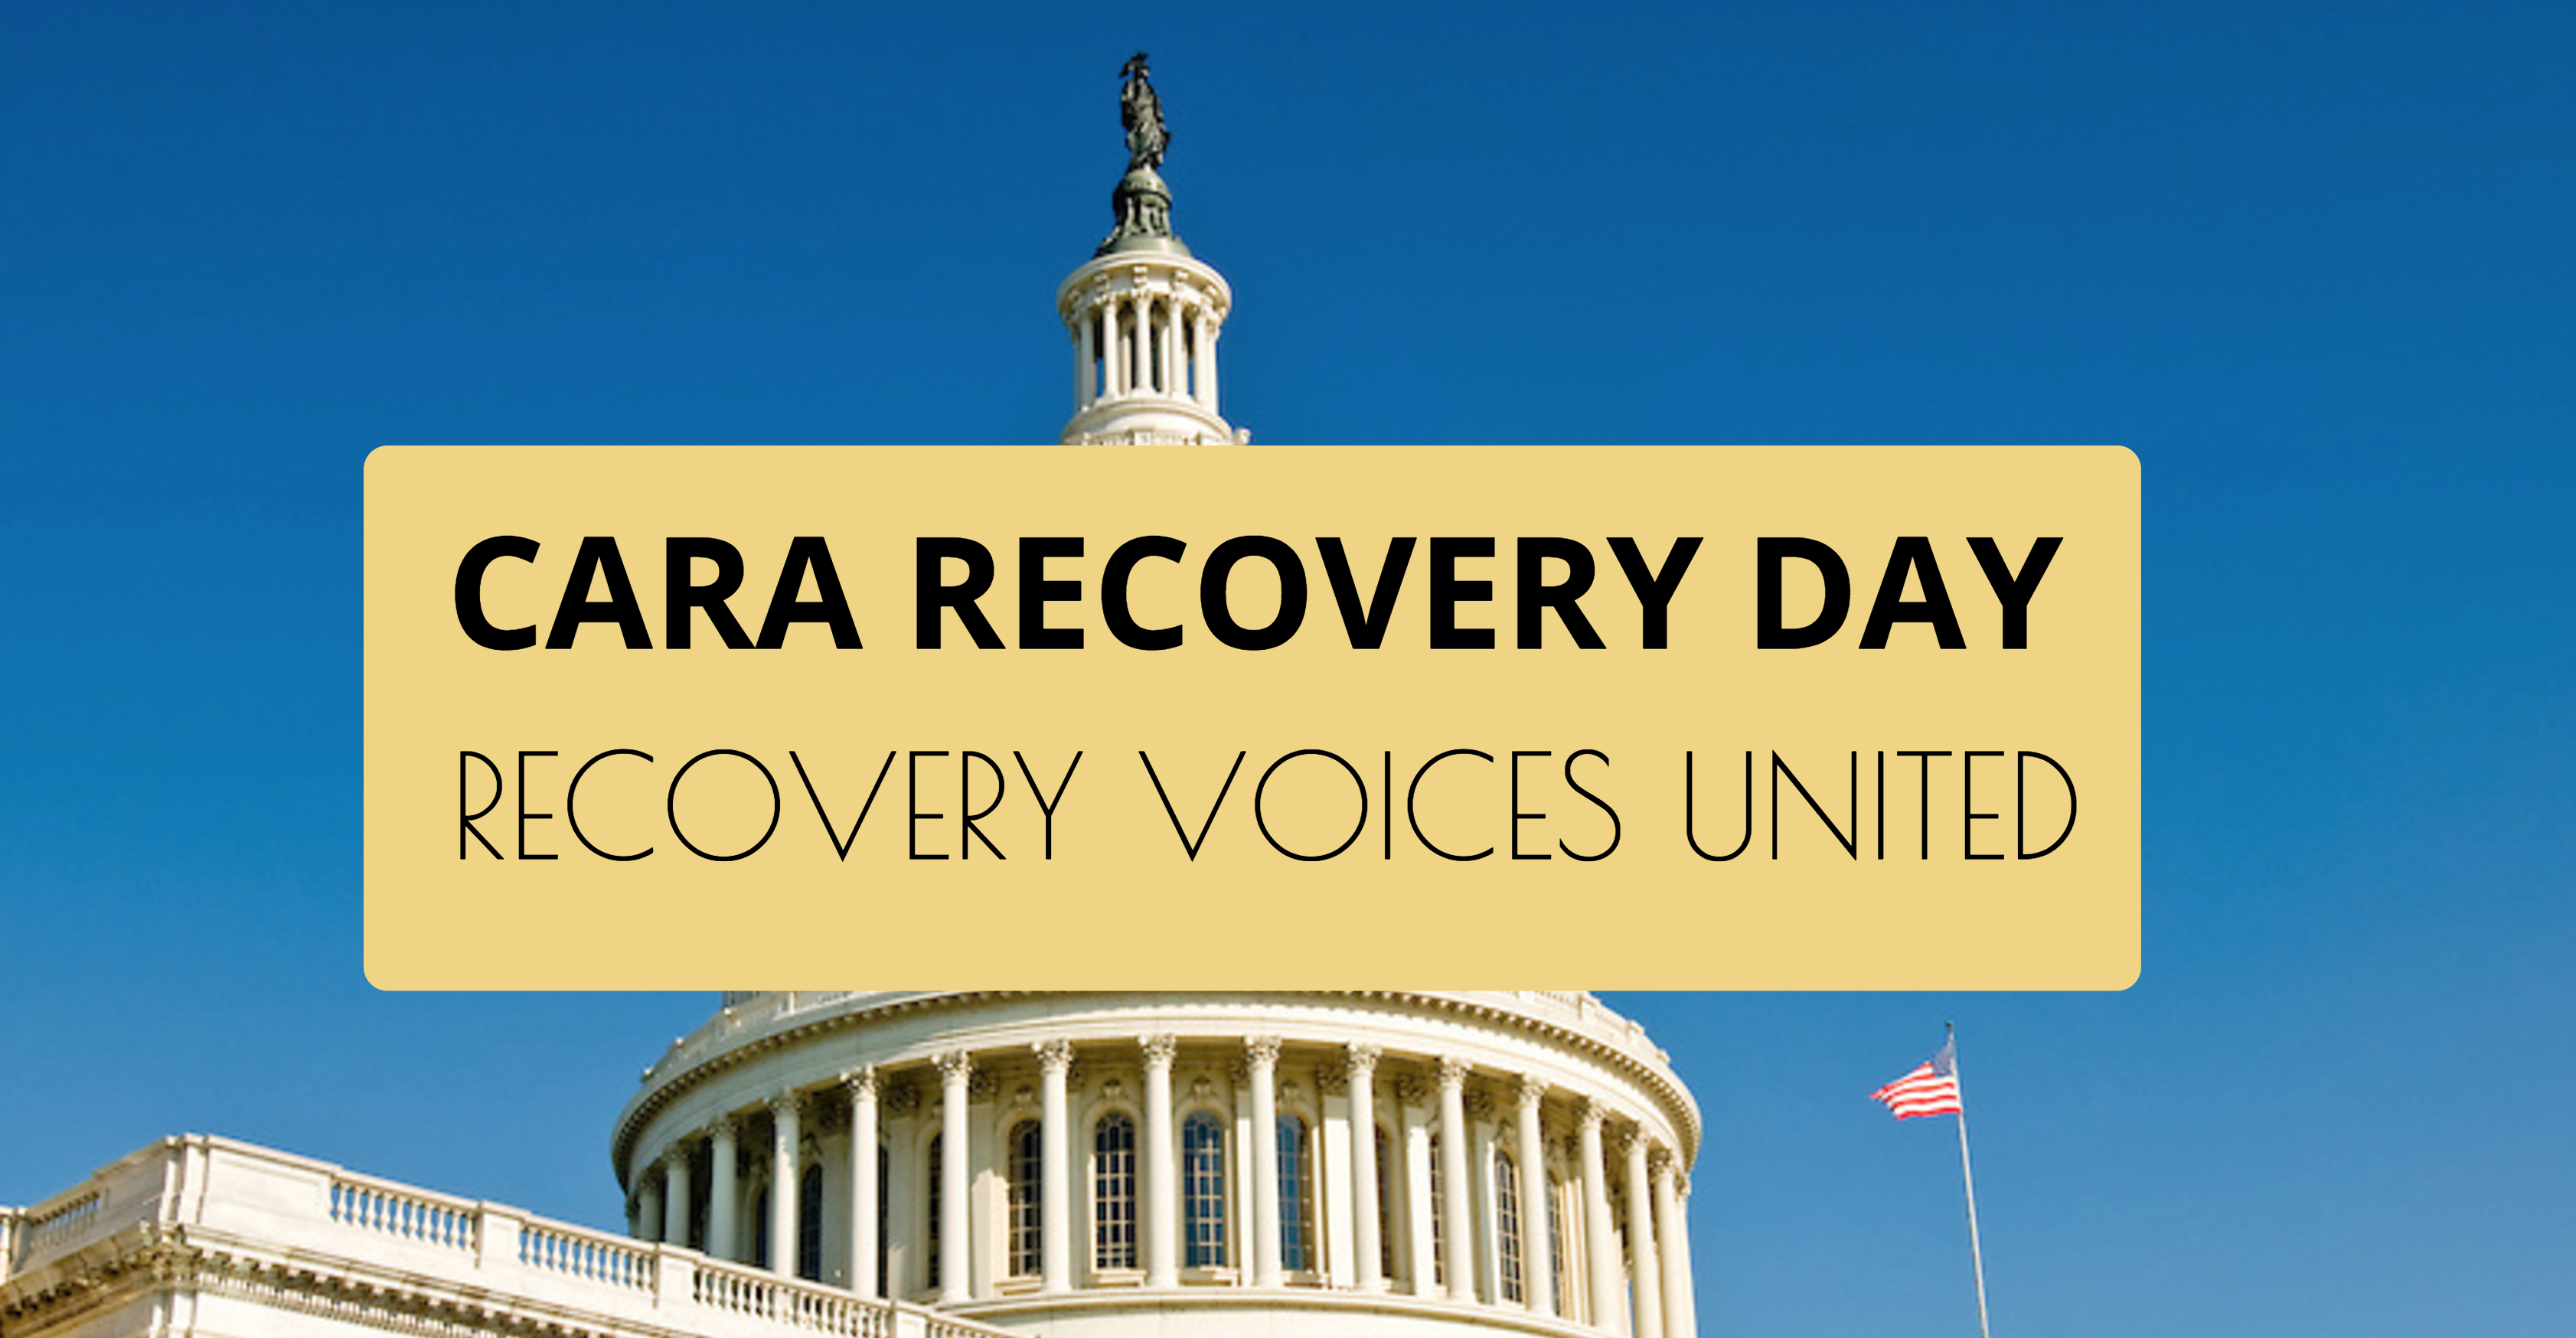 Join us for CARA Recovery Day